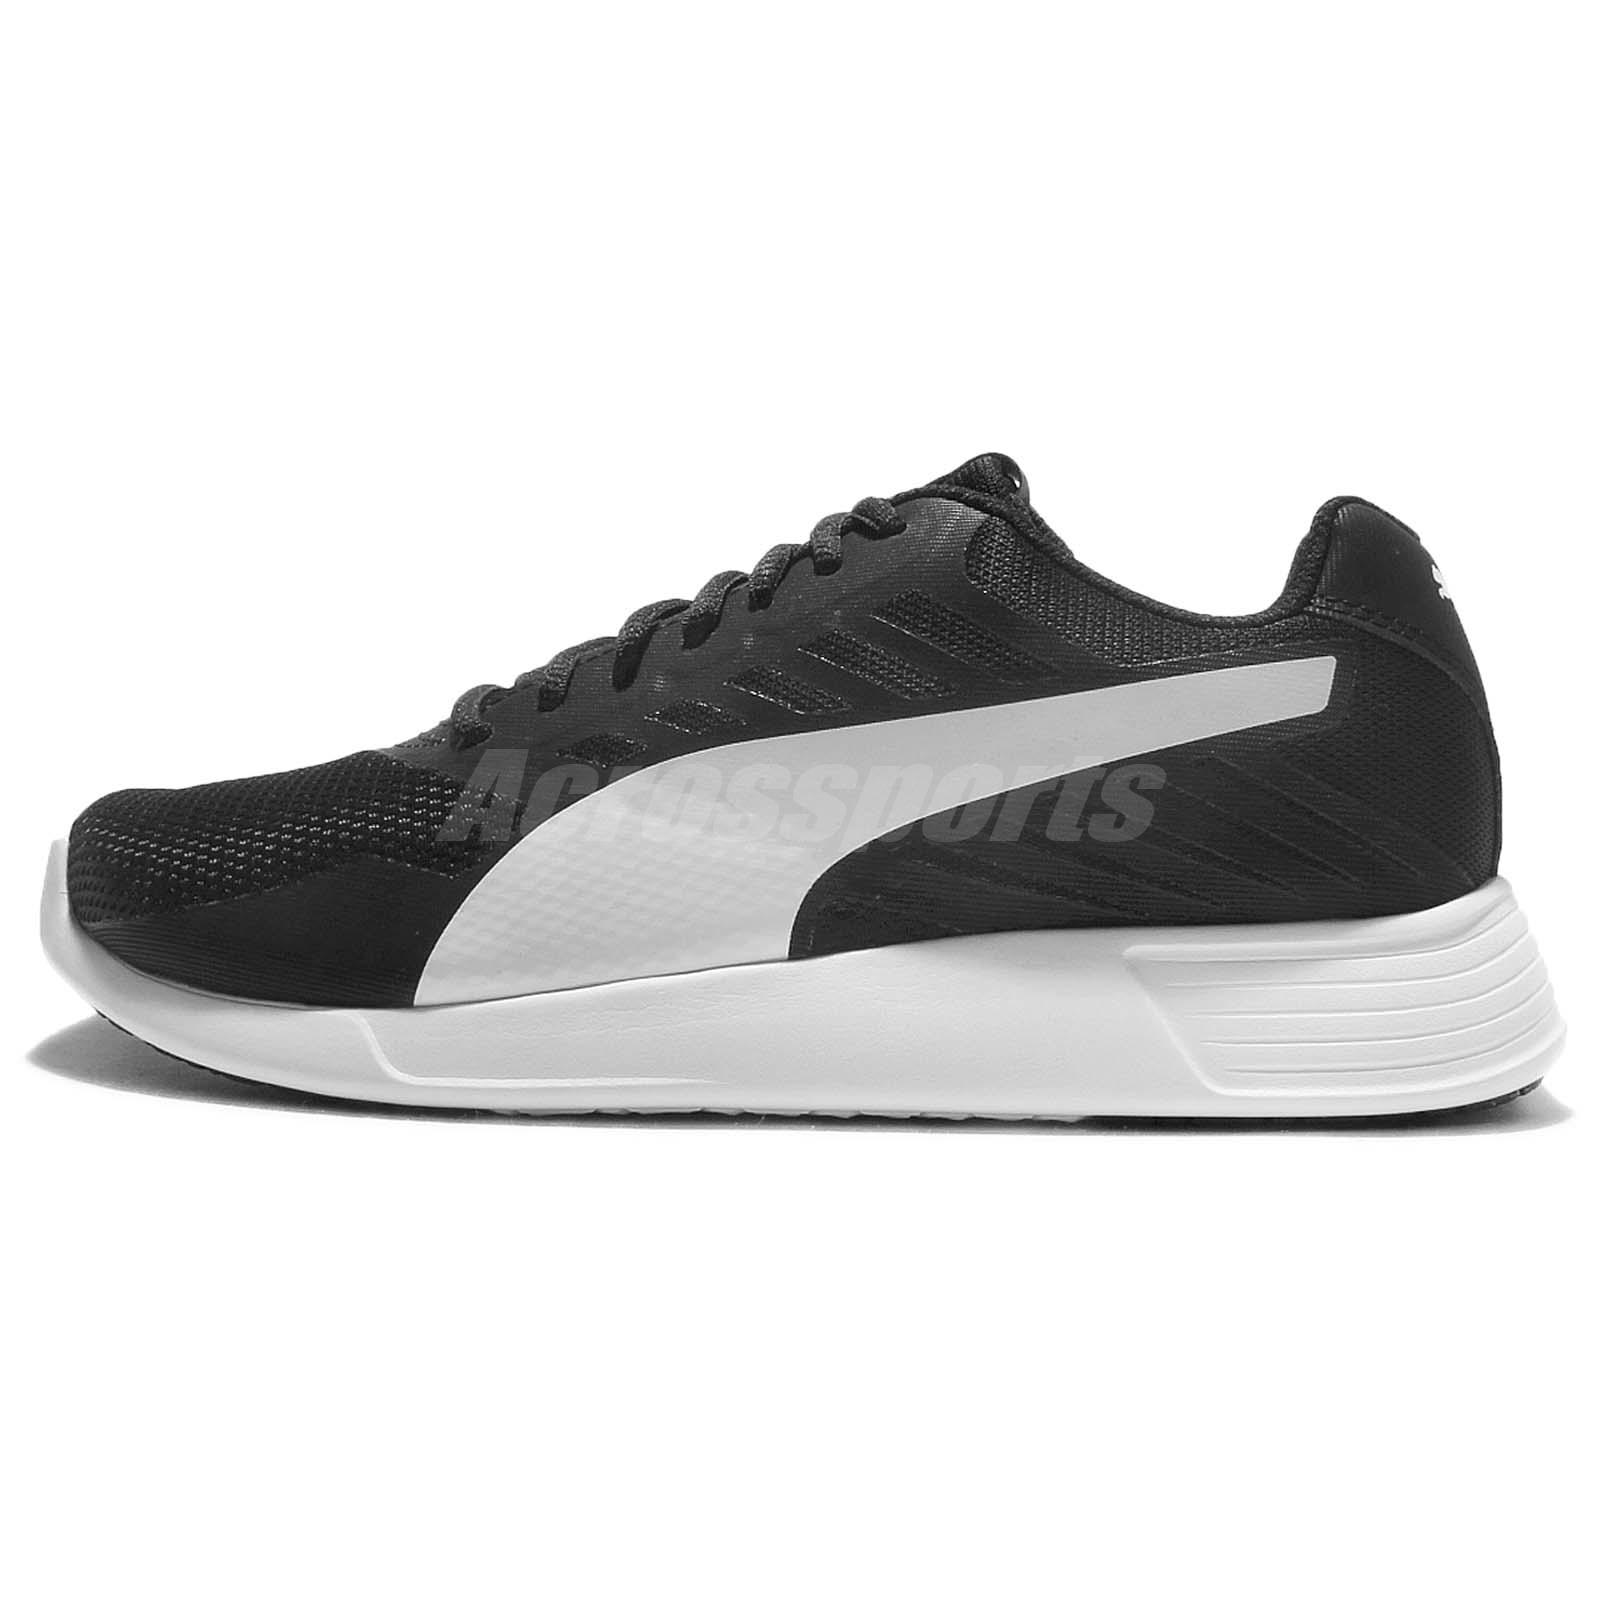 184f7c211211 Puma ST Trainer Pro Black White Men Training Lightweight Shoes Sneaker  361959-01